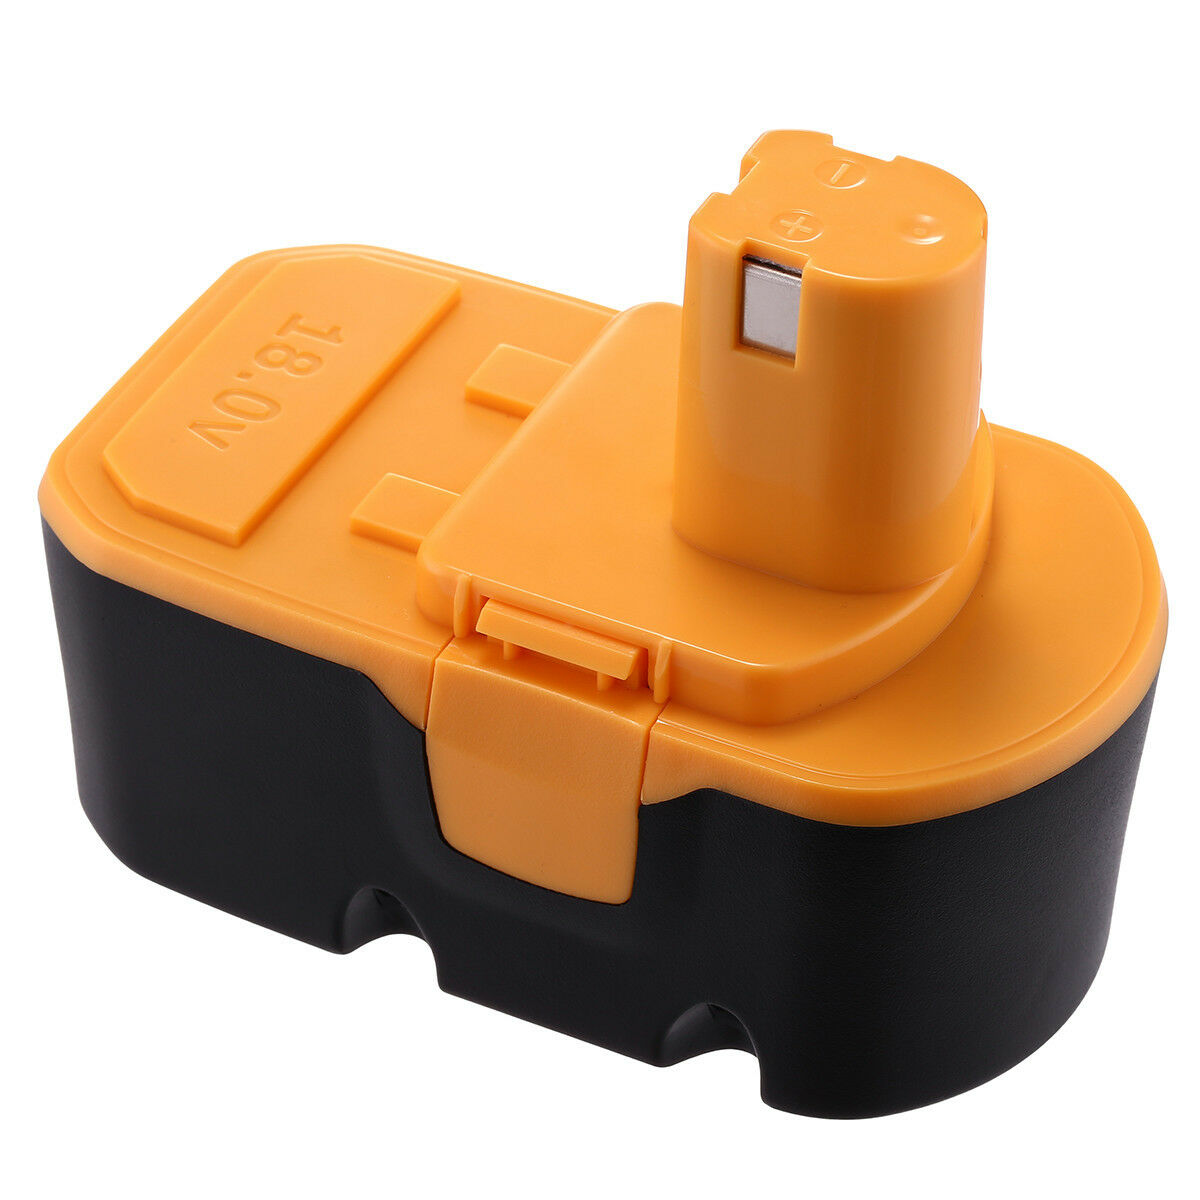 18V high capacity 3000mAh Ni-MH Drill Battery For Ryobis ONE+ PLUS P100 <strong>P101</strong> ABP1803 BPP-1820 rechargeable battery